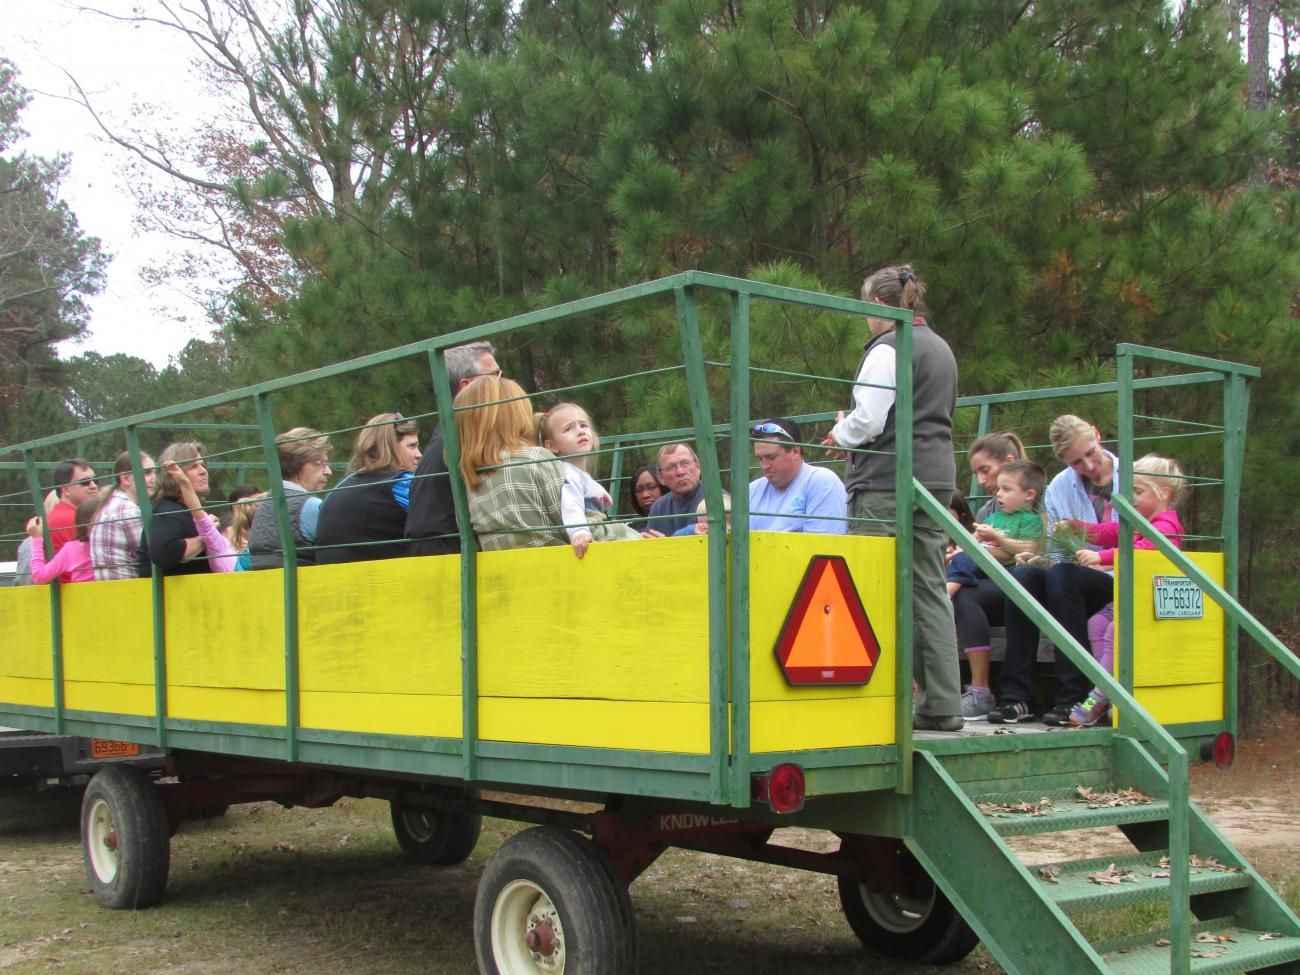 Photo of families on the park's wagon in the Longleaf Area learning about that ecosystem